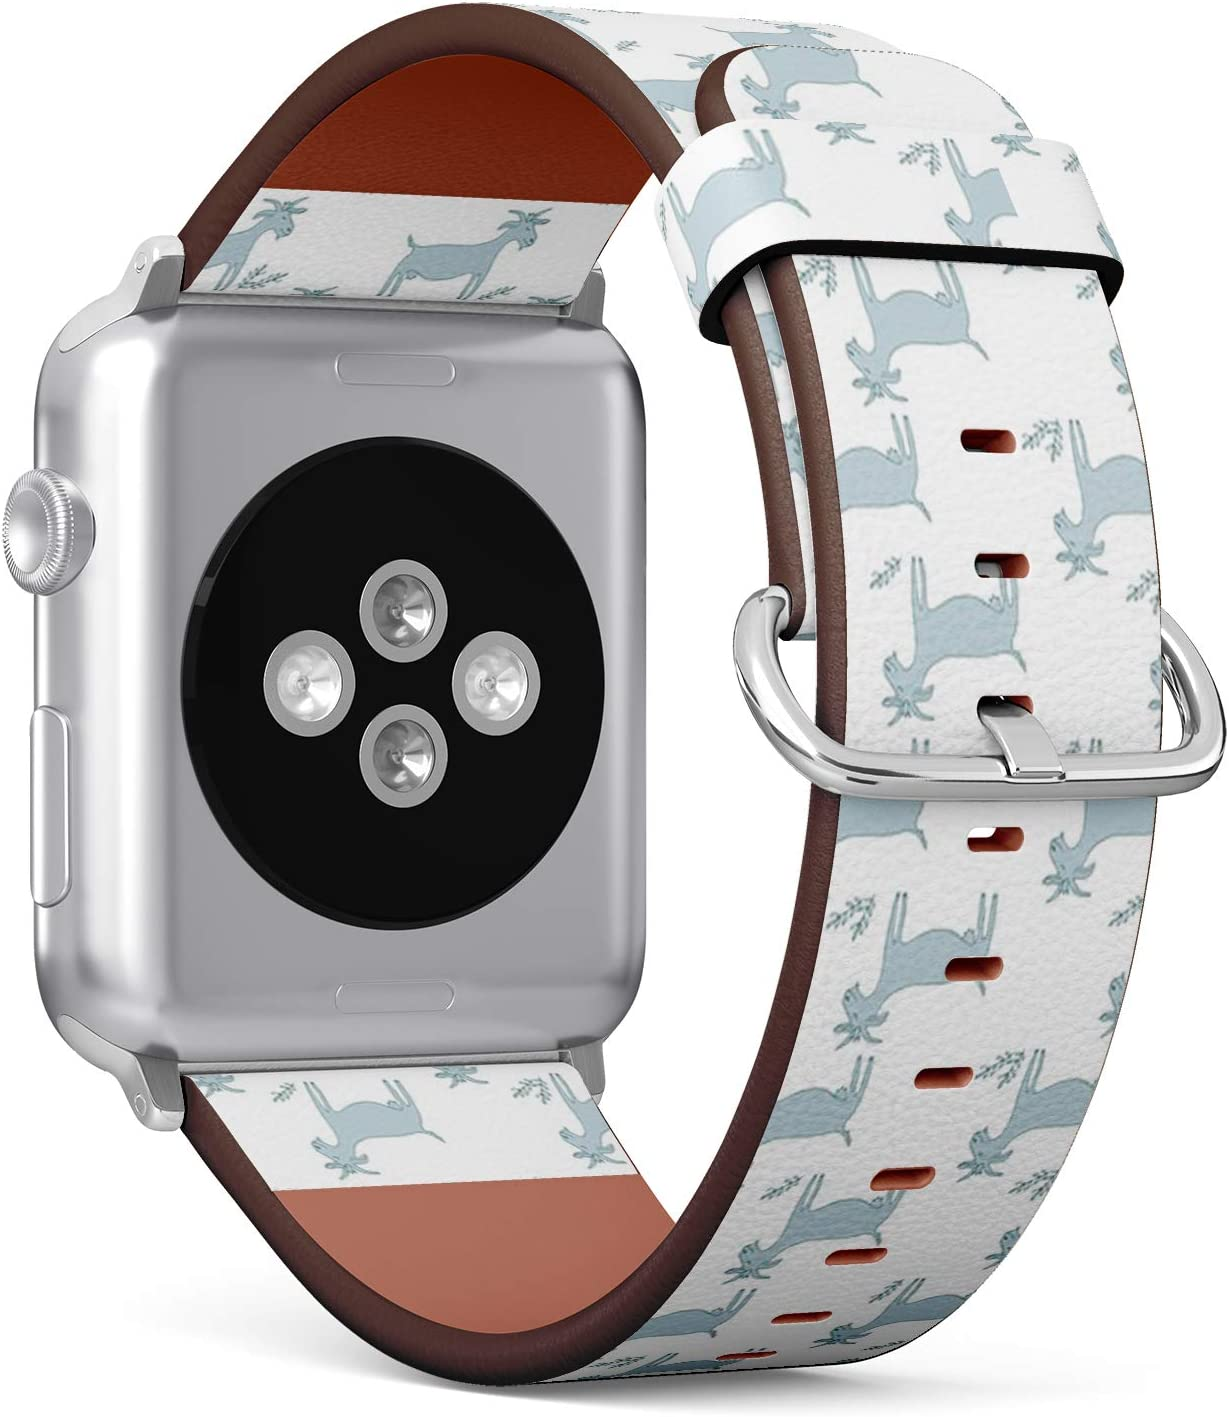 Compatible with Small Apple Watch 38mm & 40mm - (Series 5, 4, 3, 2, 1) Leather Watch Wrist Band Strap Bracelet with Stainless Steel Clasp and Adapters (Goats On)